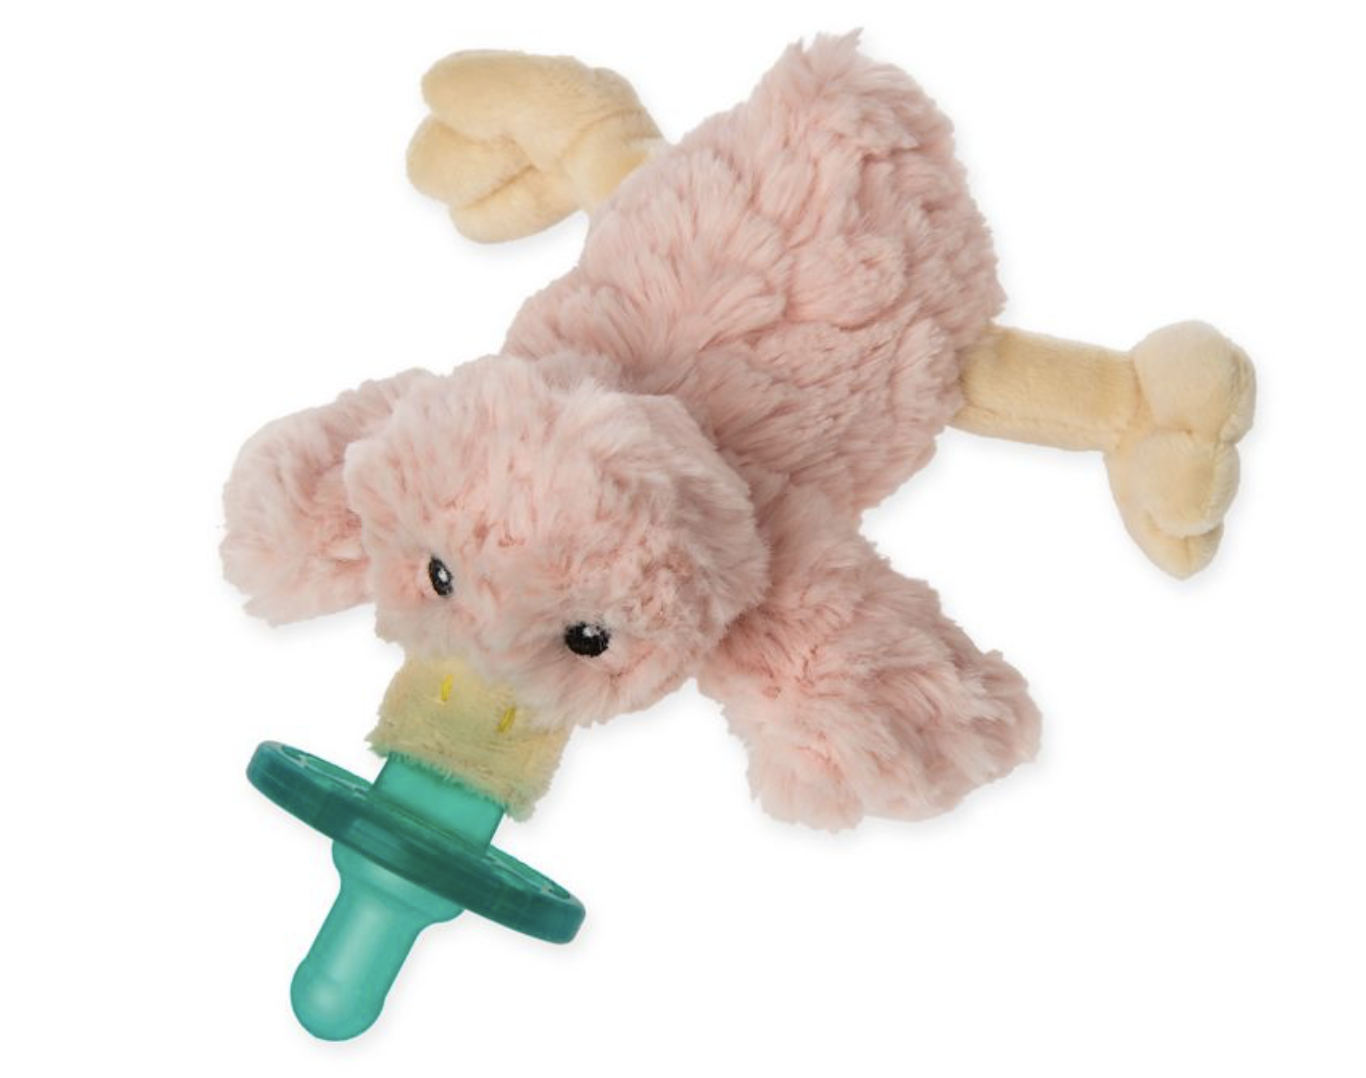 MARY MYER WUBBANUB PACIFIER - Perfect when your little one can't keep their paci in their mouth. So many cute animals to chose from too!